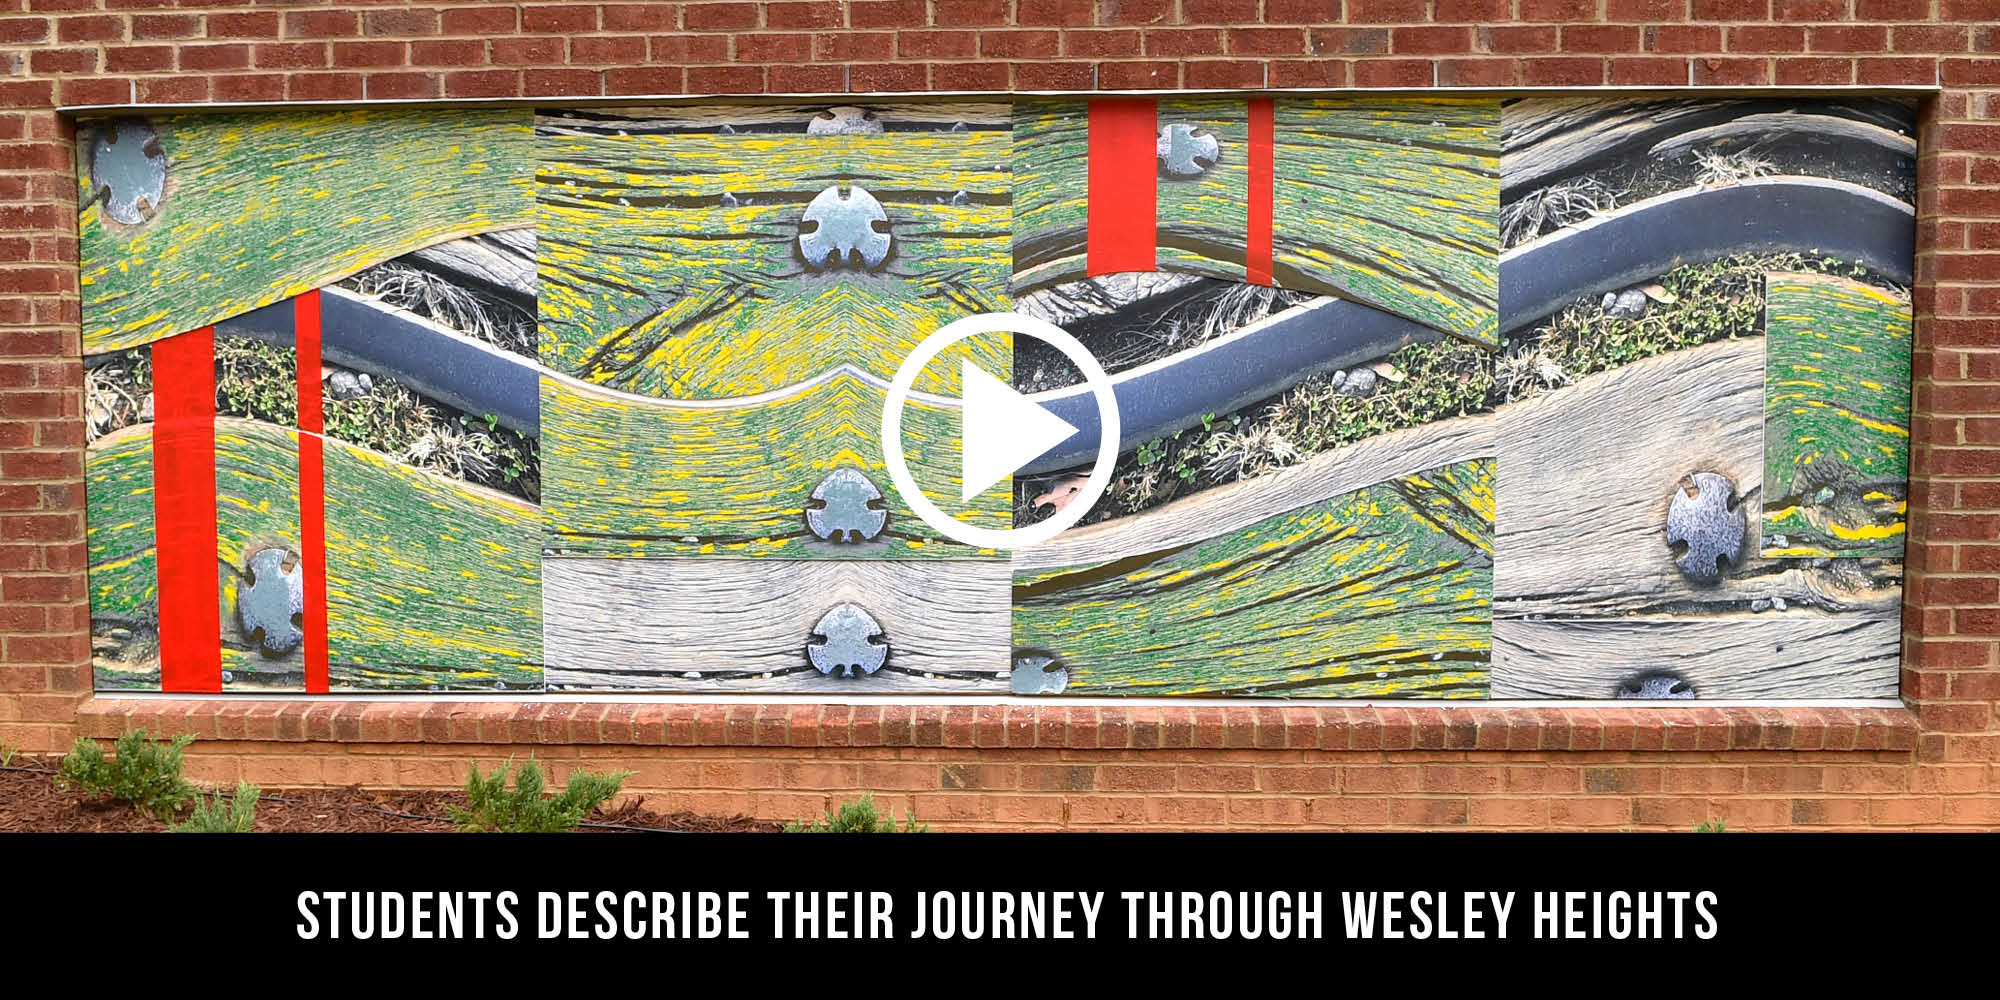 Students describe their journey through Wesley Heights